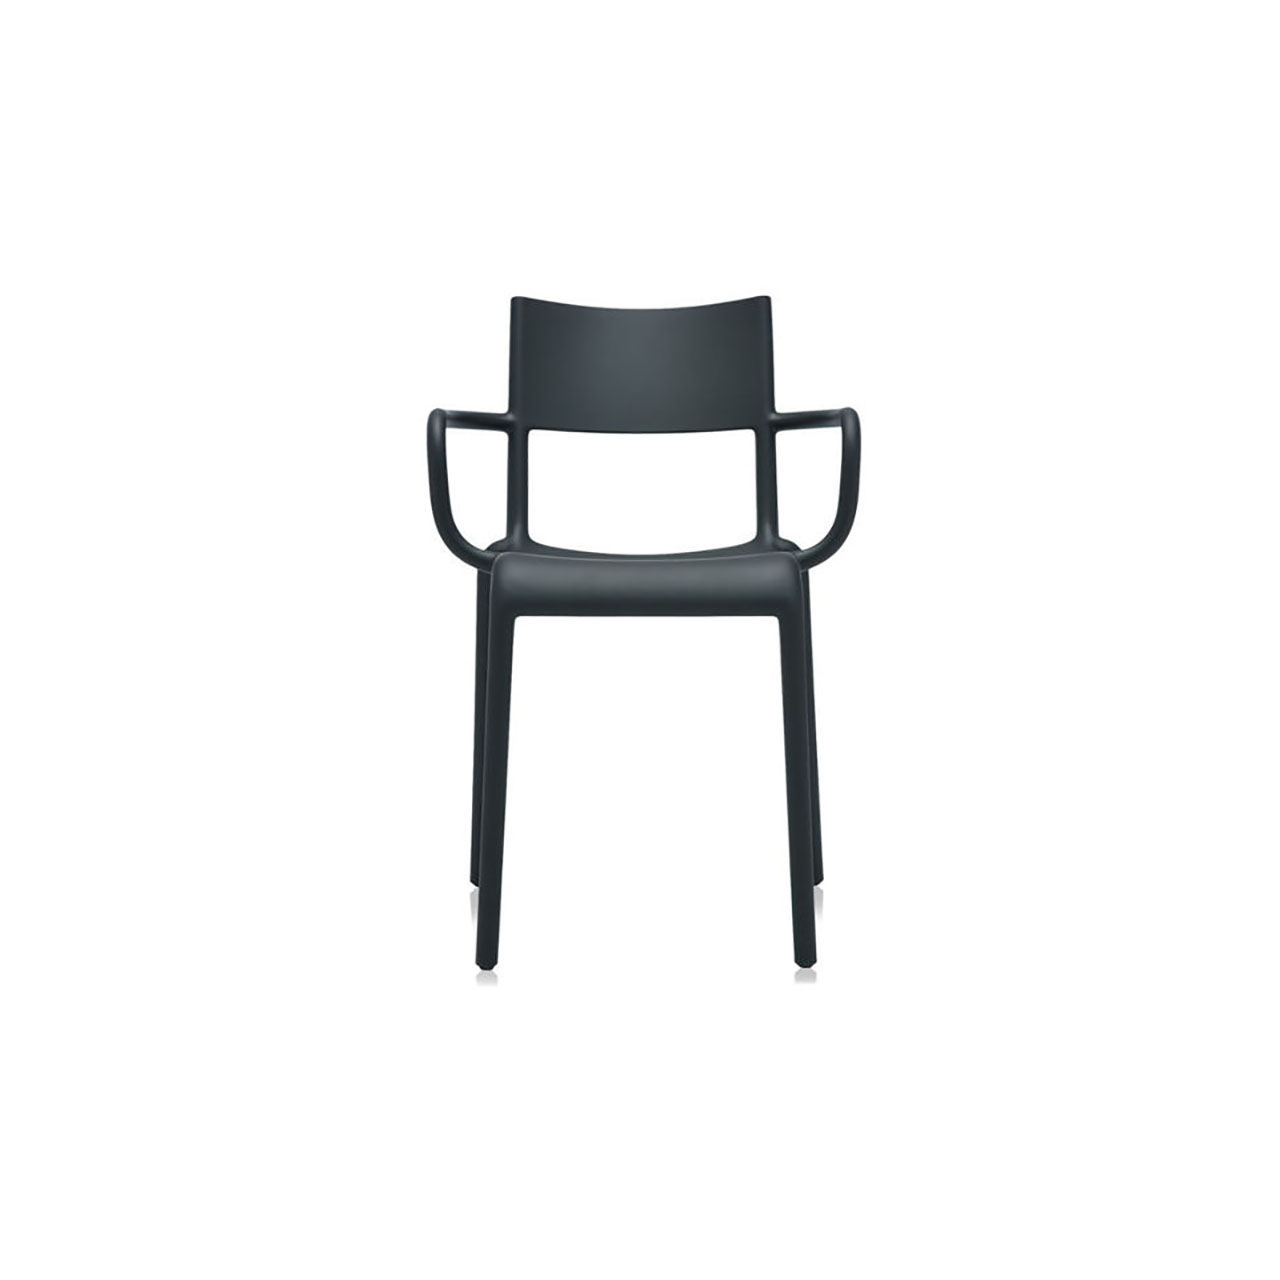 Generic Chair A Set of 2 in Black by Kartell